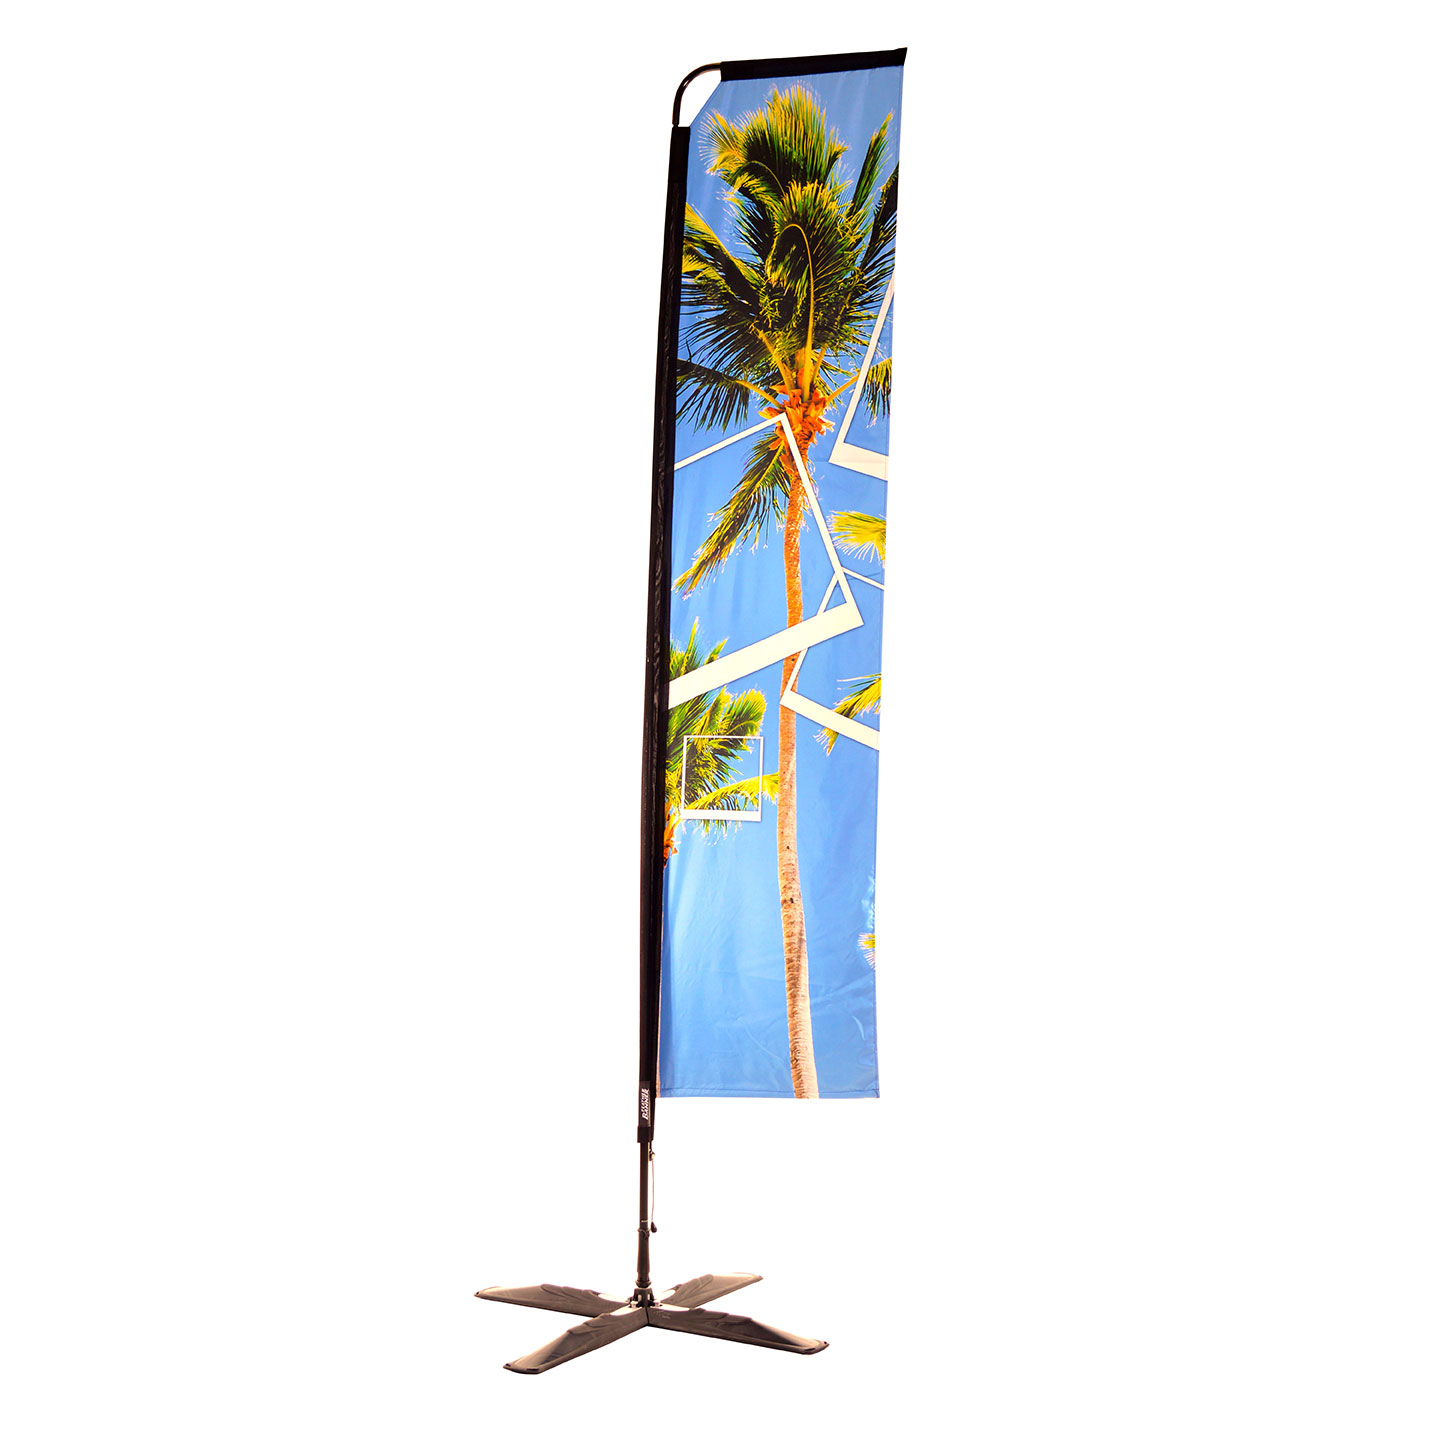 Feather Banners Feather Flags Telescopic Banners